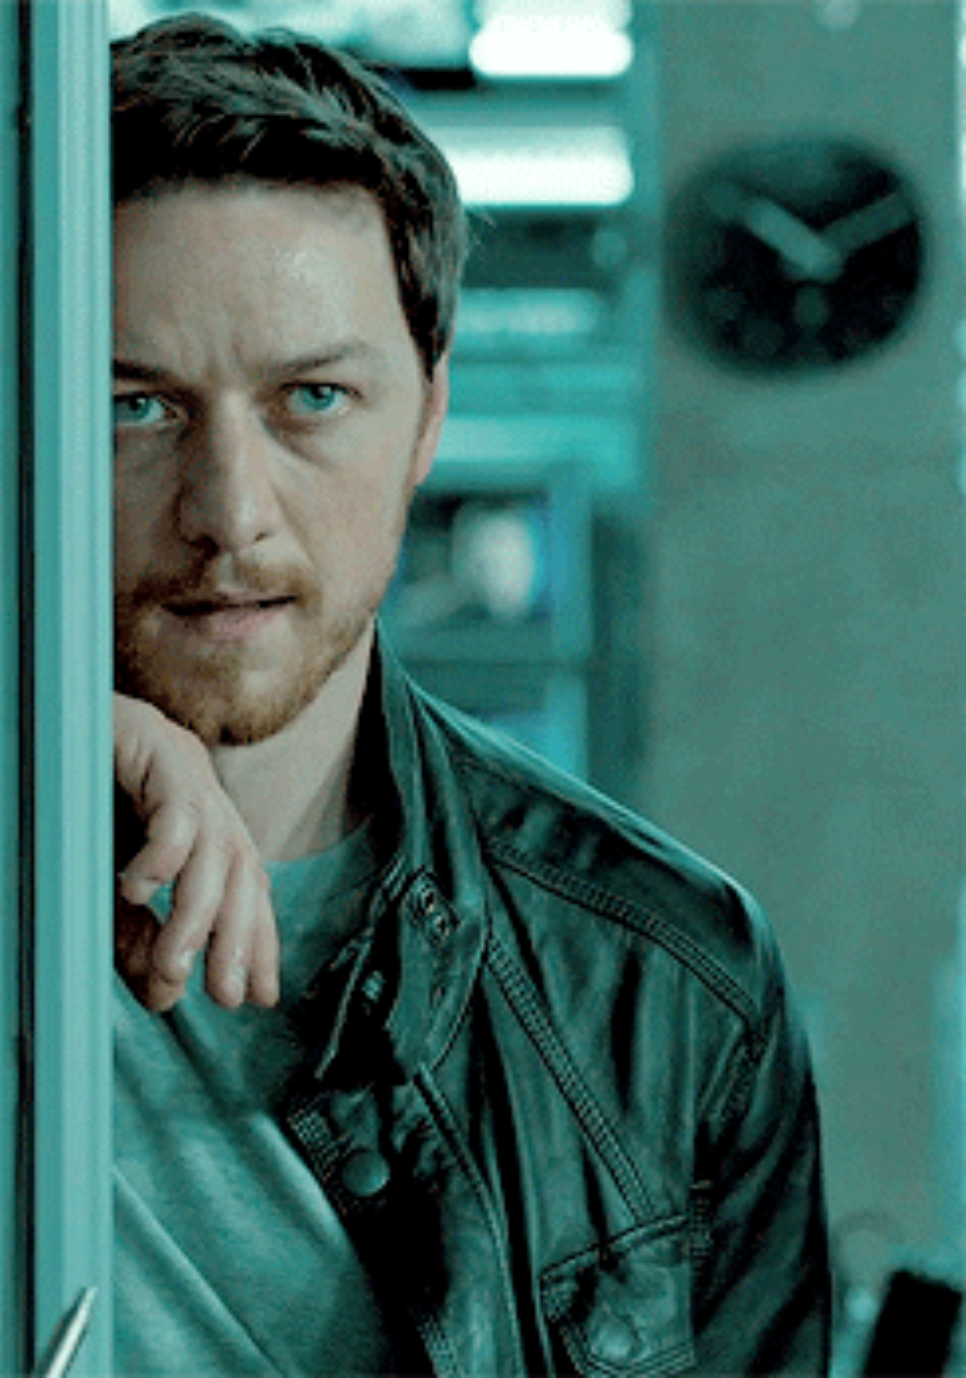 Welcome To The Punch : welcome, punch, JAMES, MCAVOY-MAX-WELCOME, PUNCH, James, Mcavoy,, Actor, James,, Professor, Charles, Xavier